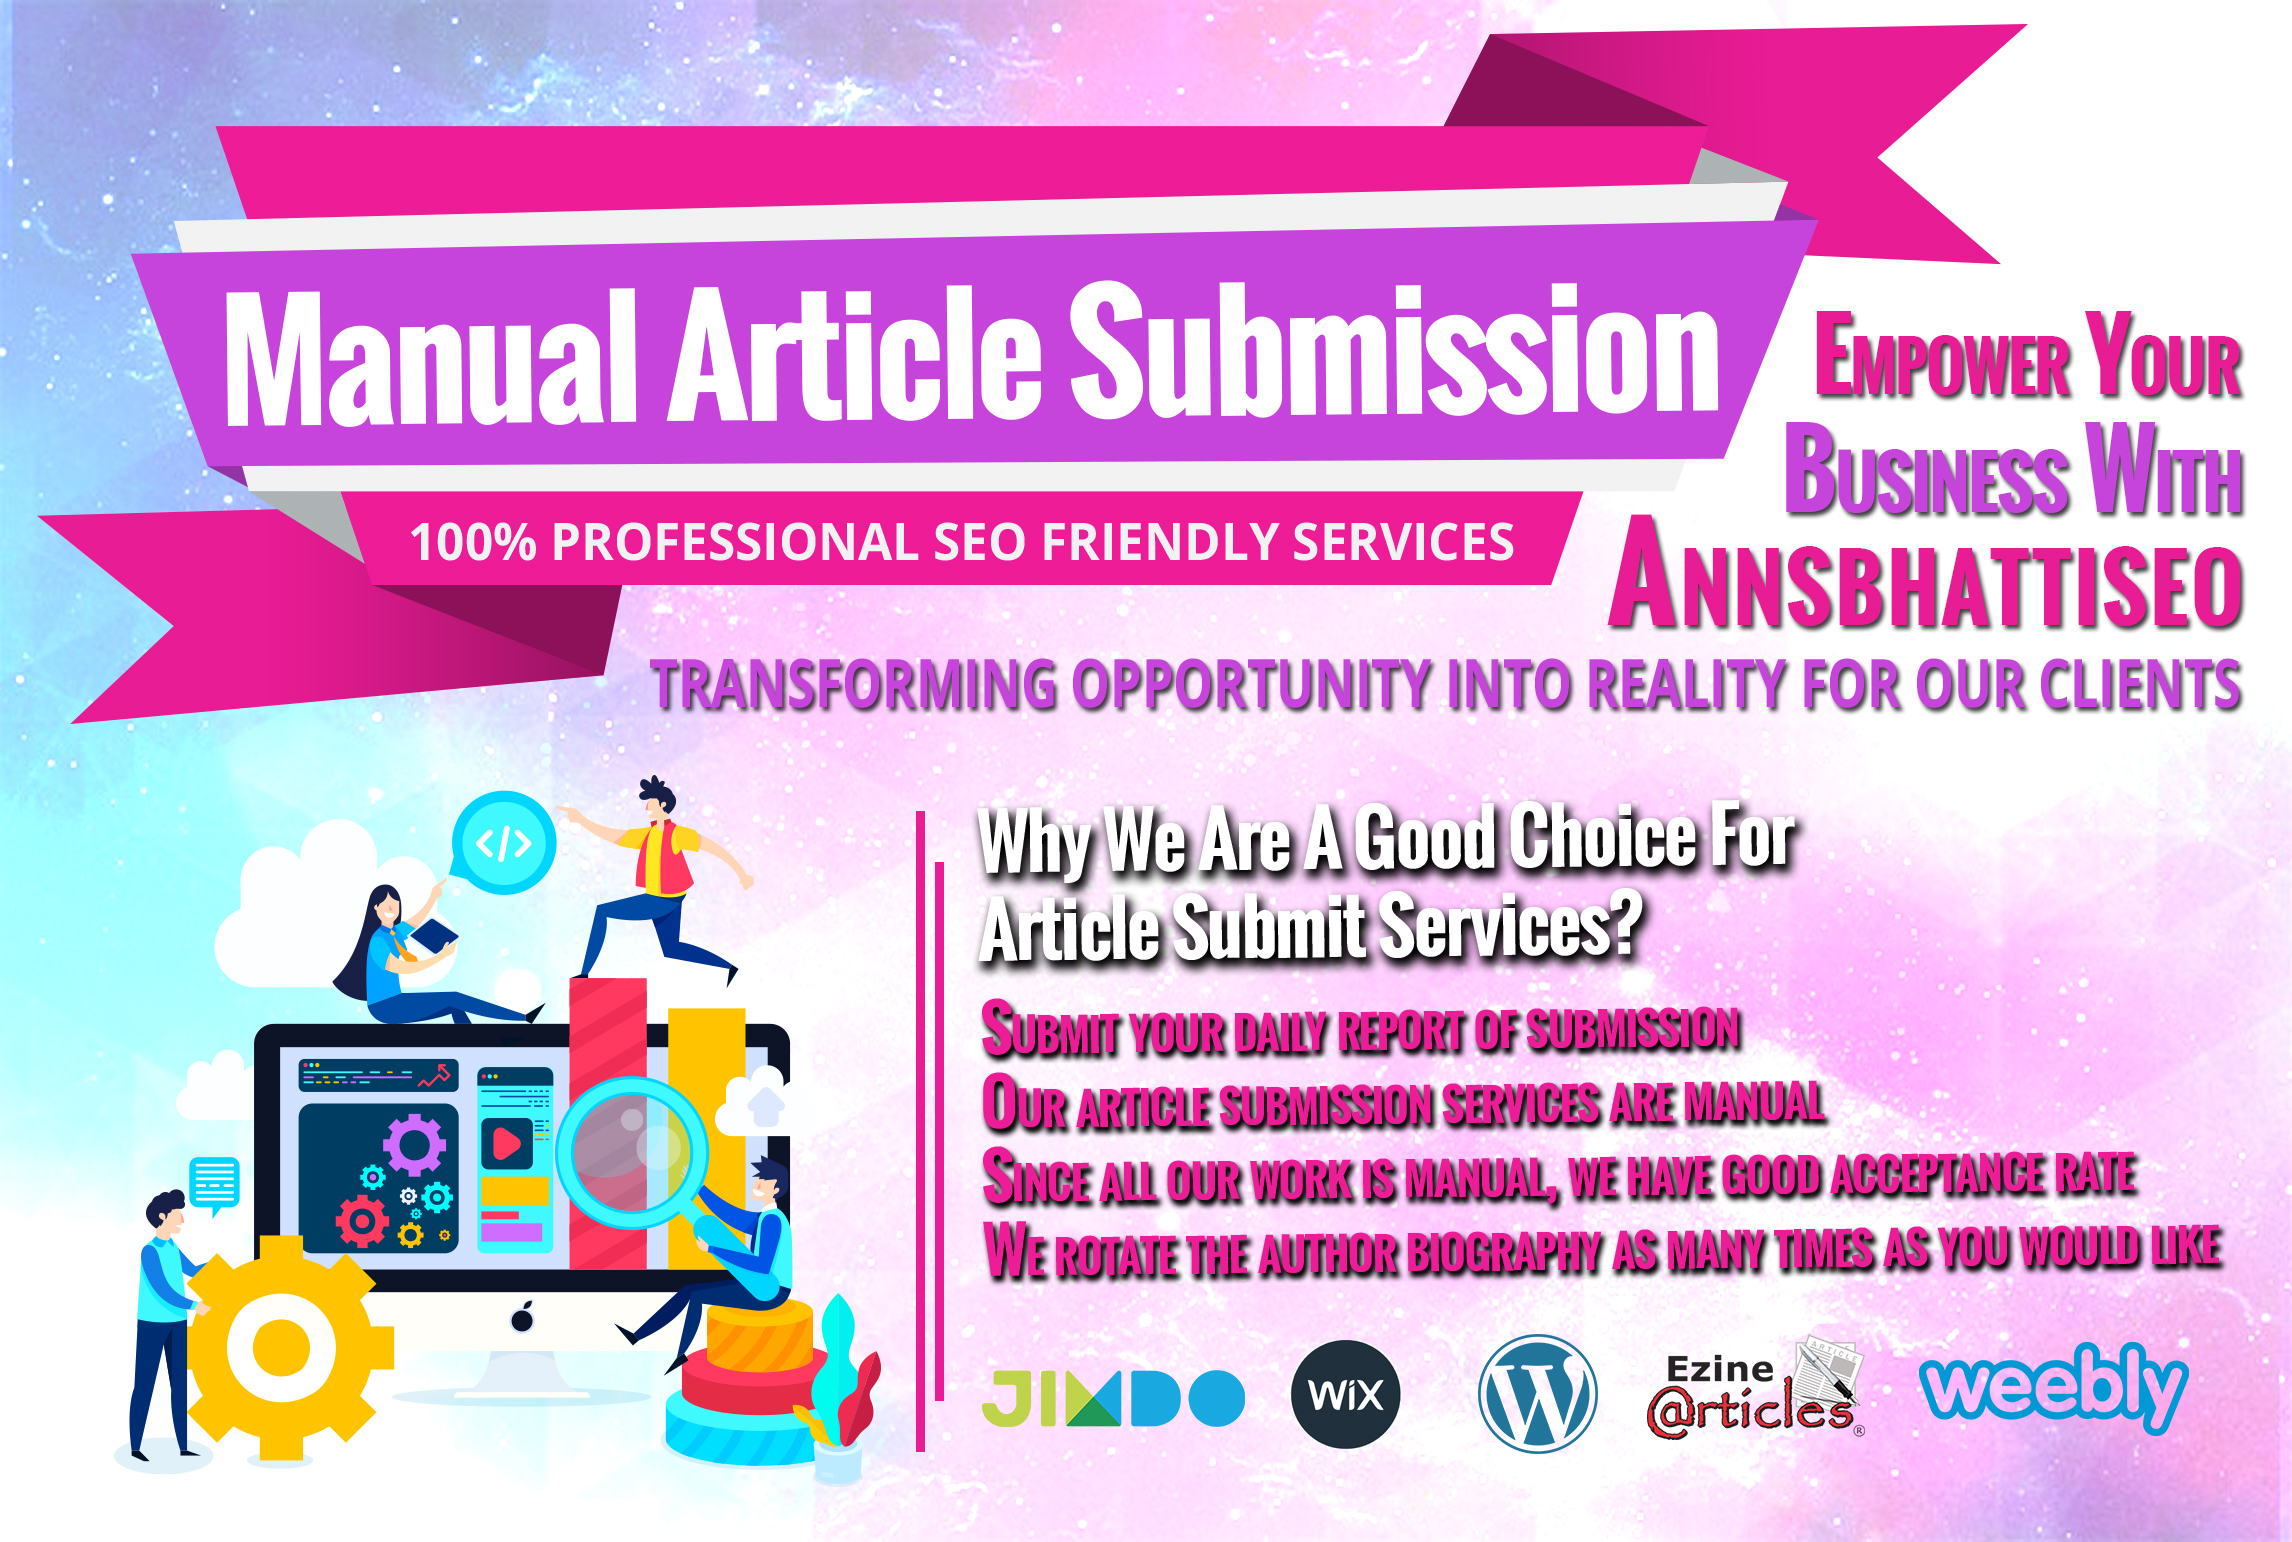 We do 10 Links 100% professional SEO friendly manual article submission services